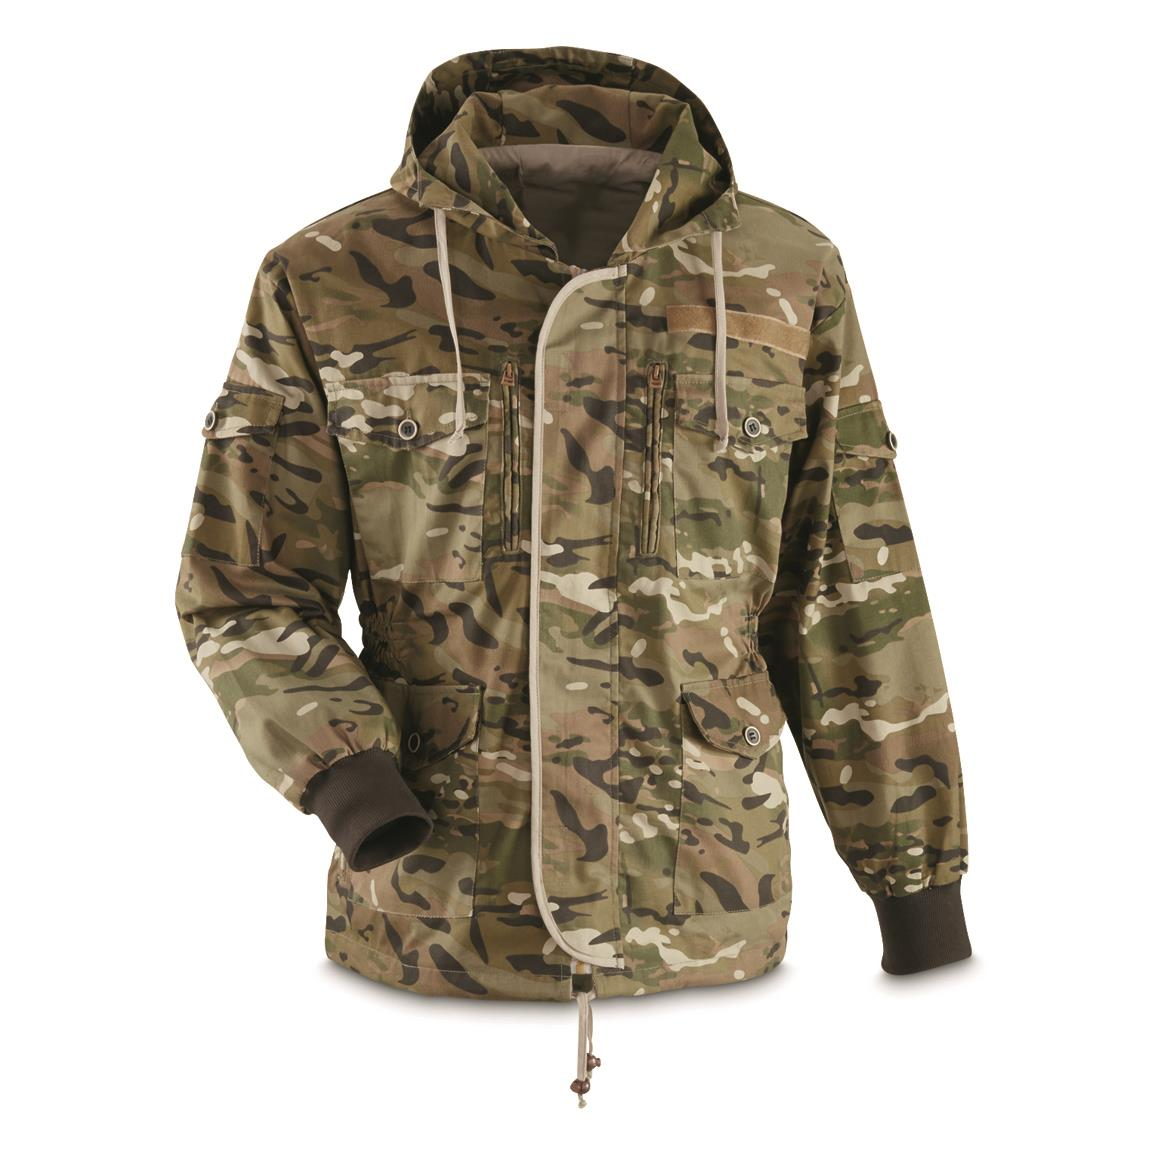 U.S. Military Style Inclement Weather Field Jacket, New